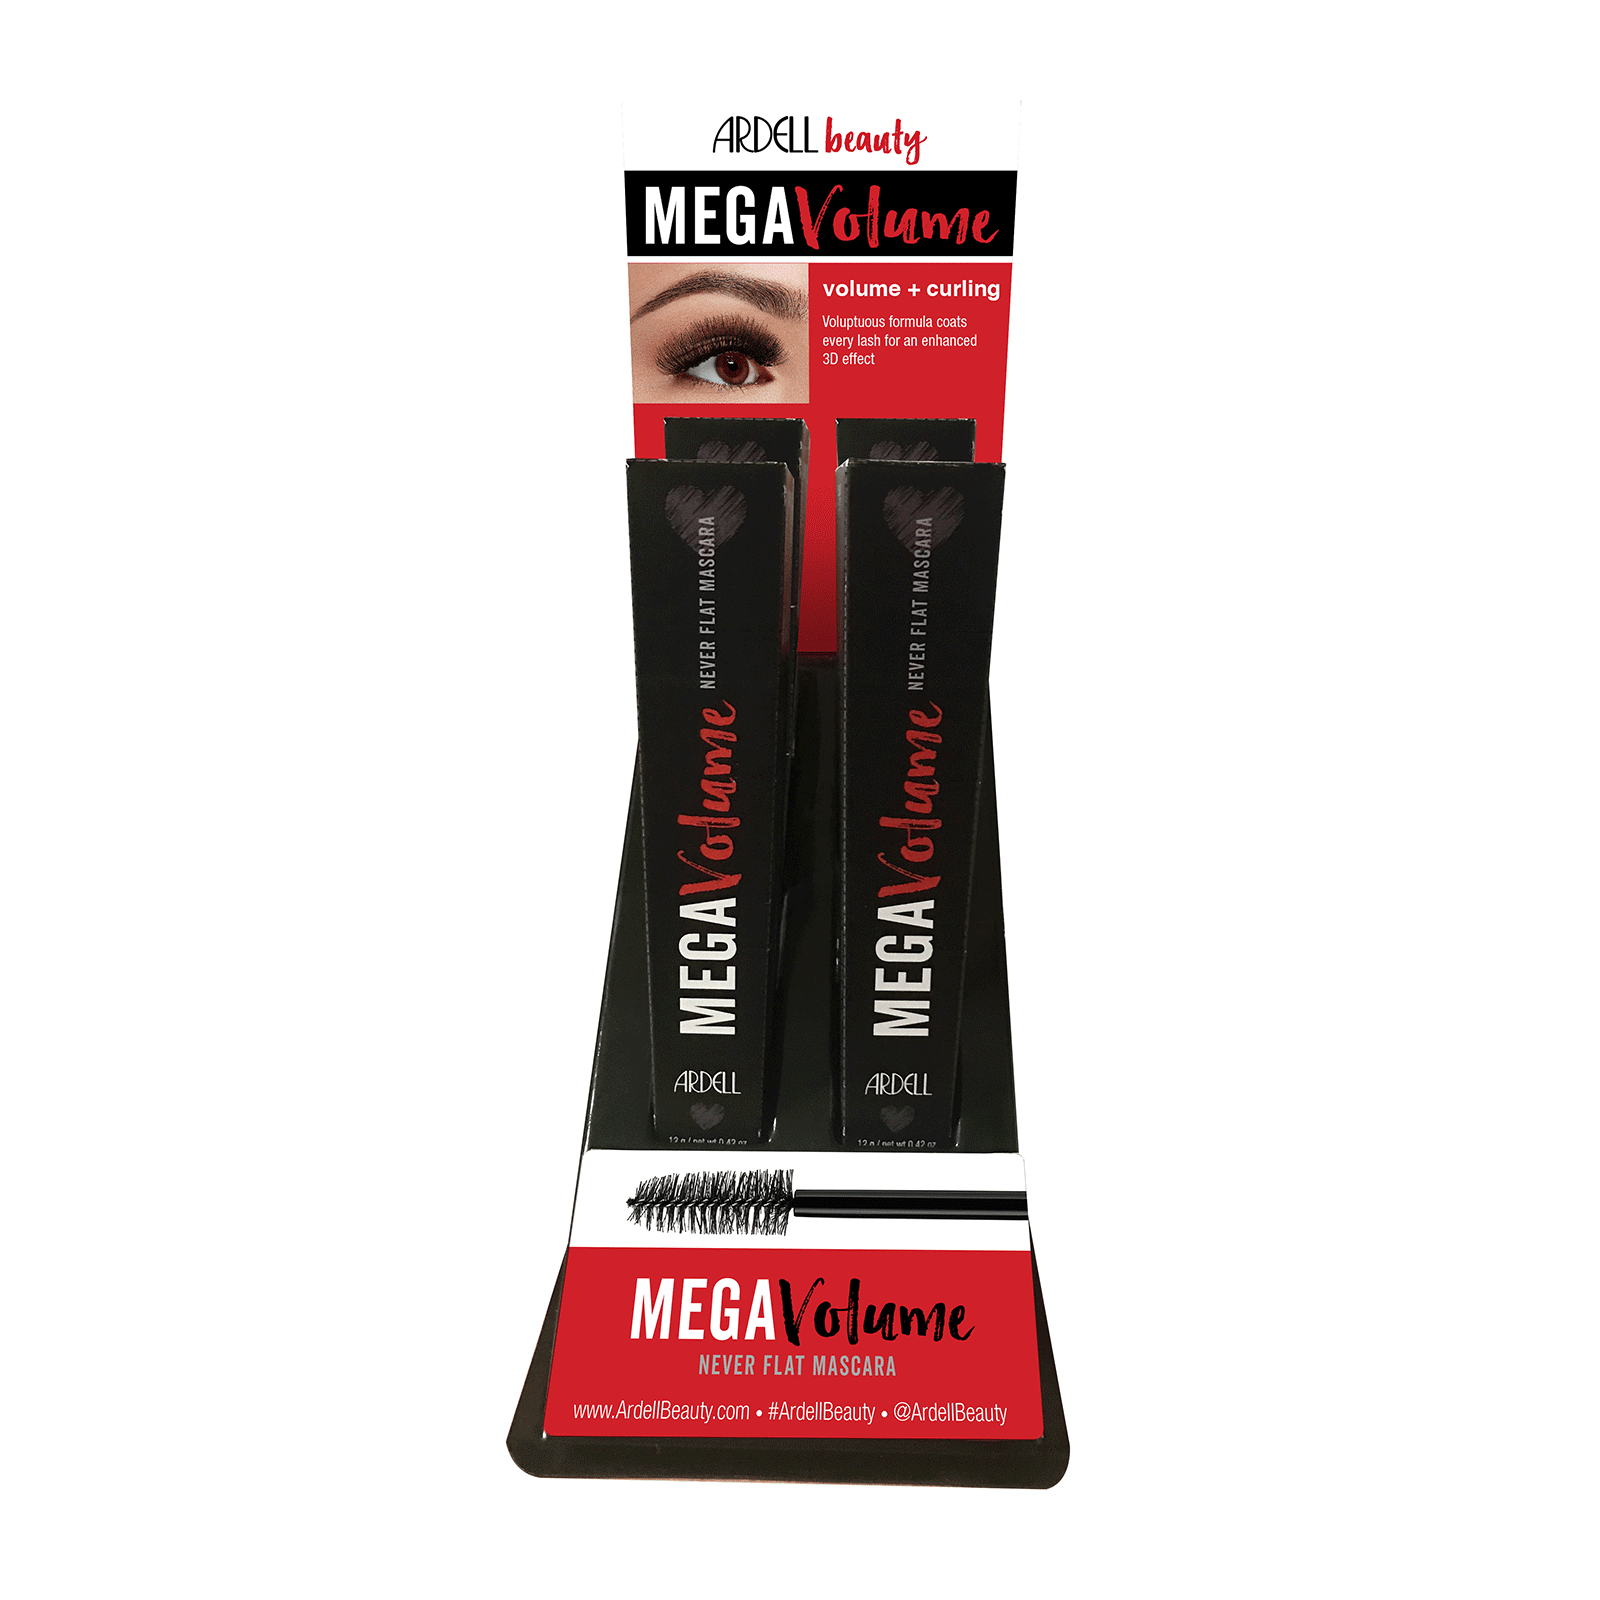 Ardell Metal Volume Mascara - 4 Piece Display